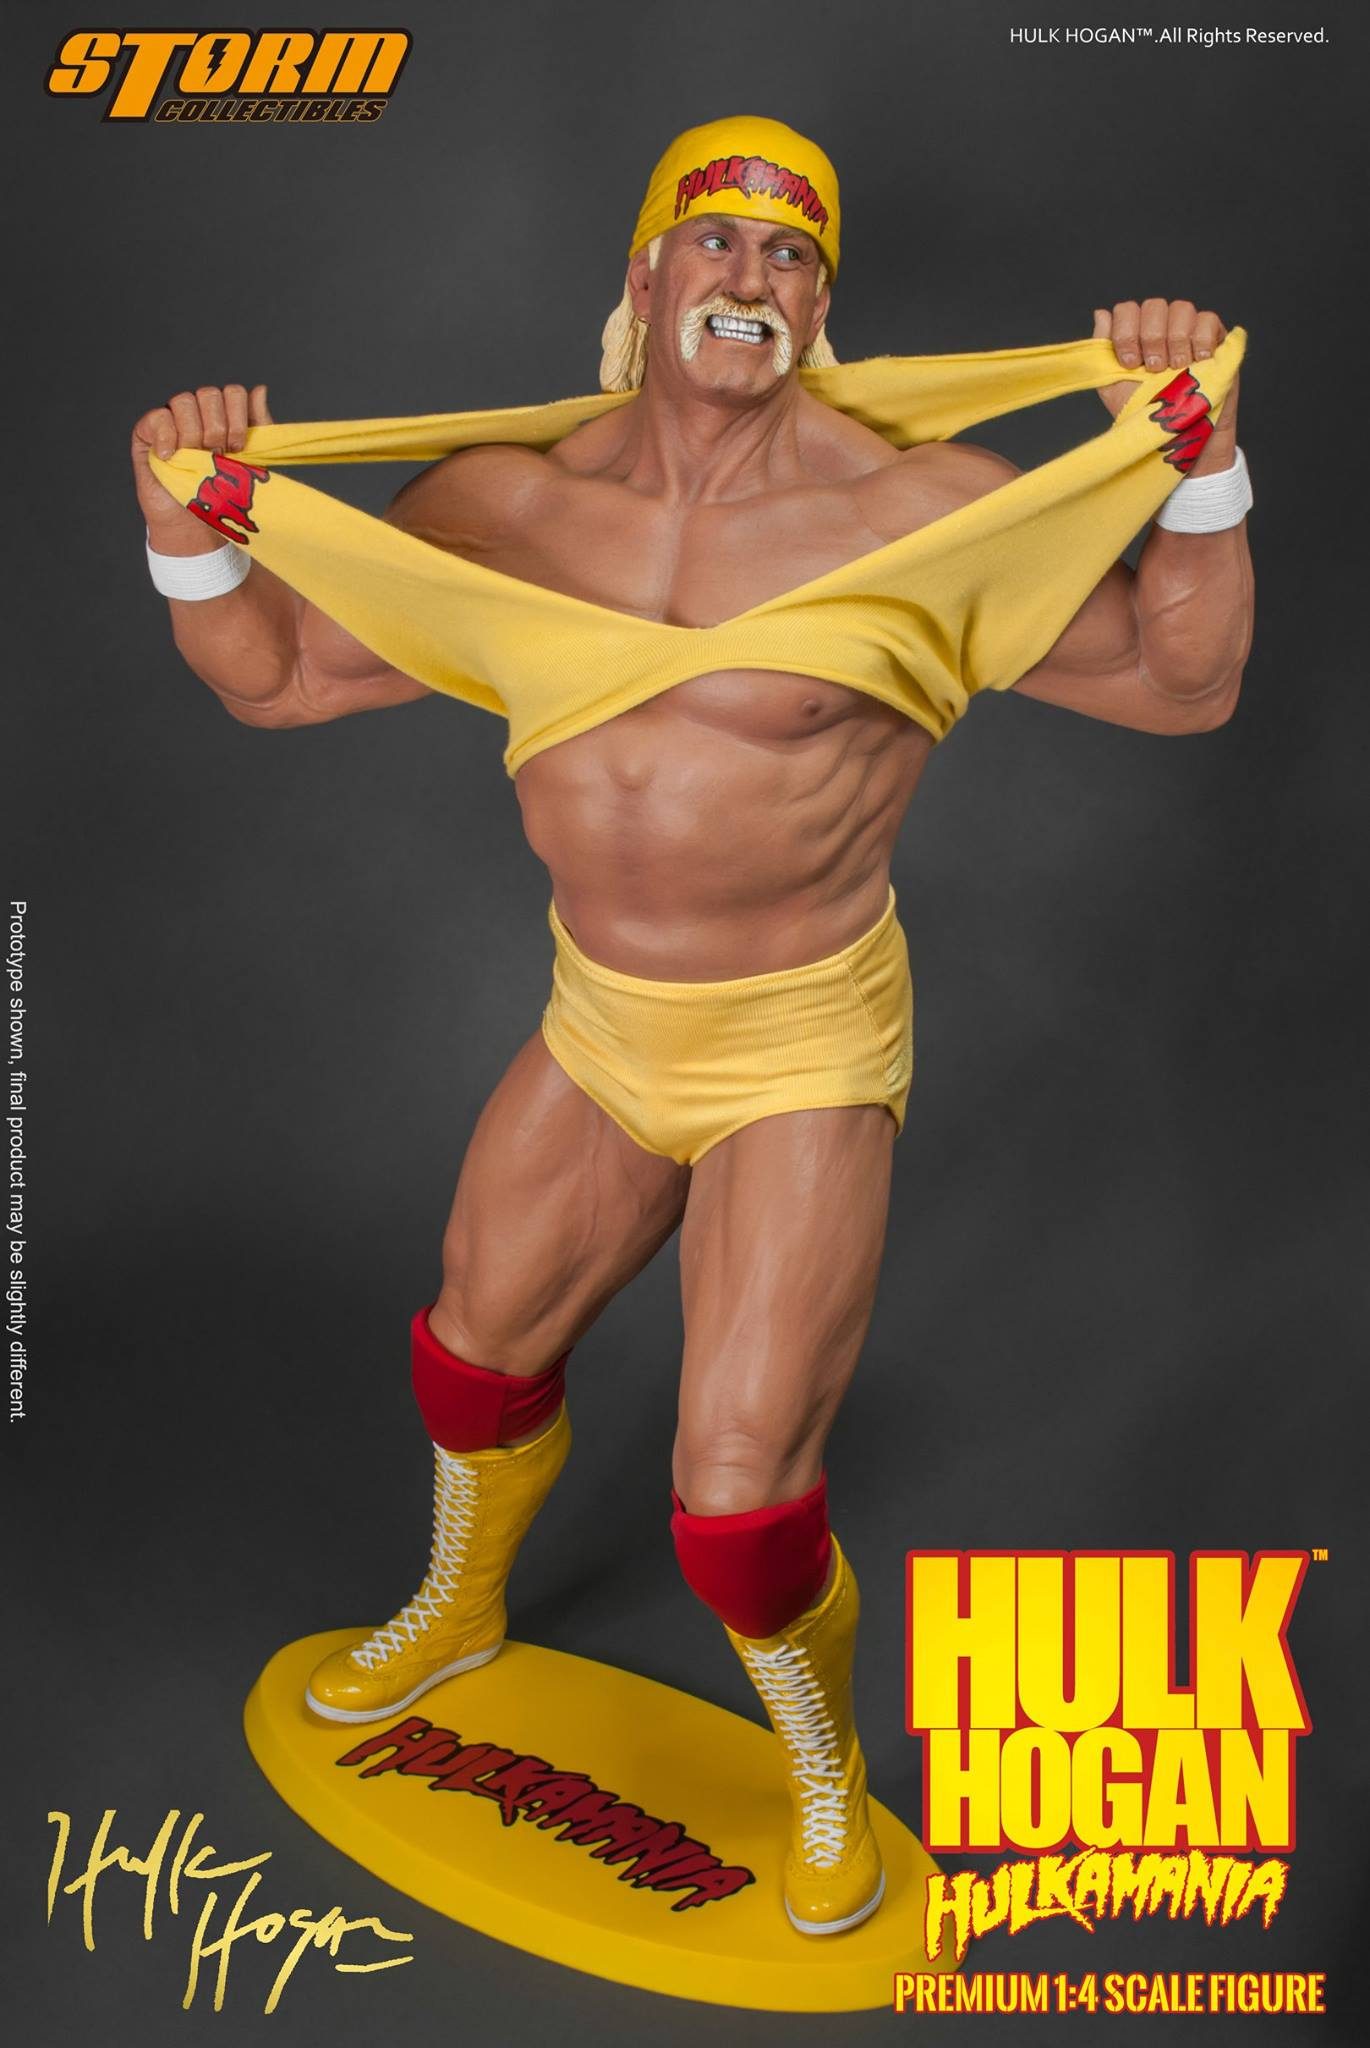 Hulk Hogan 2017 Hulk Hogan Figures By Storm Collectibles